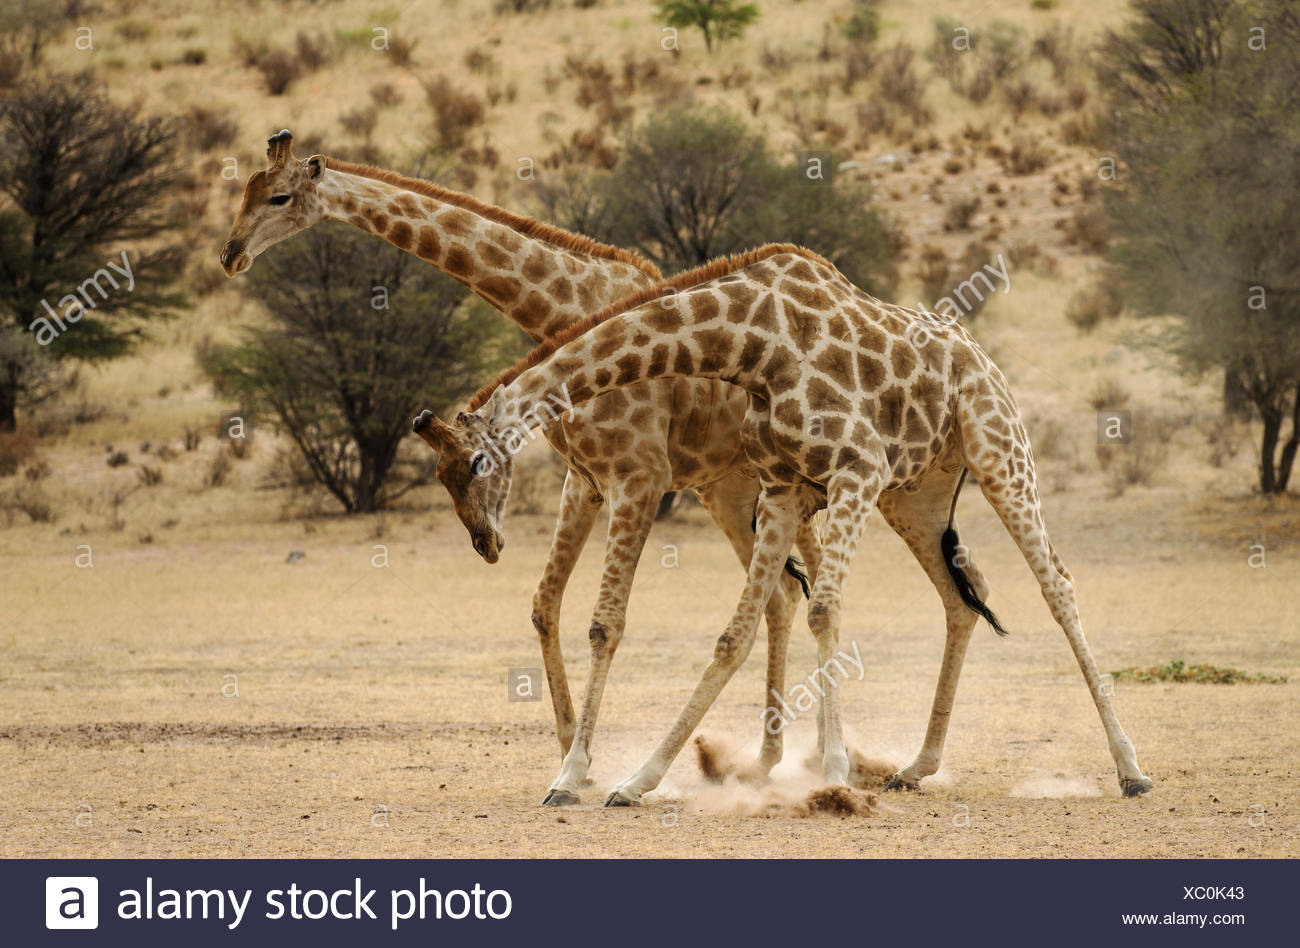 Southern Giraffe (Giraffa giraffa). Males fighting  in the dry Auob riverbed in the early morning. Kalahari Desert, Kgalagadi Transfrontier Park, South Africa. - Stock Image